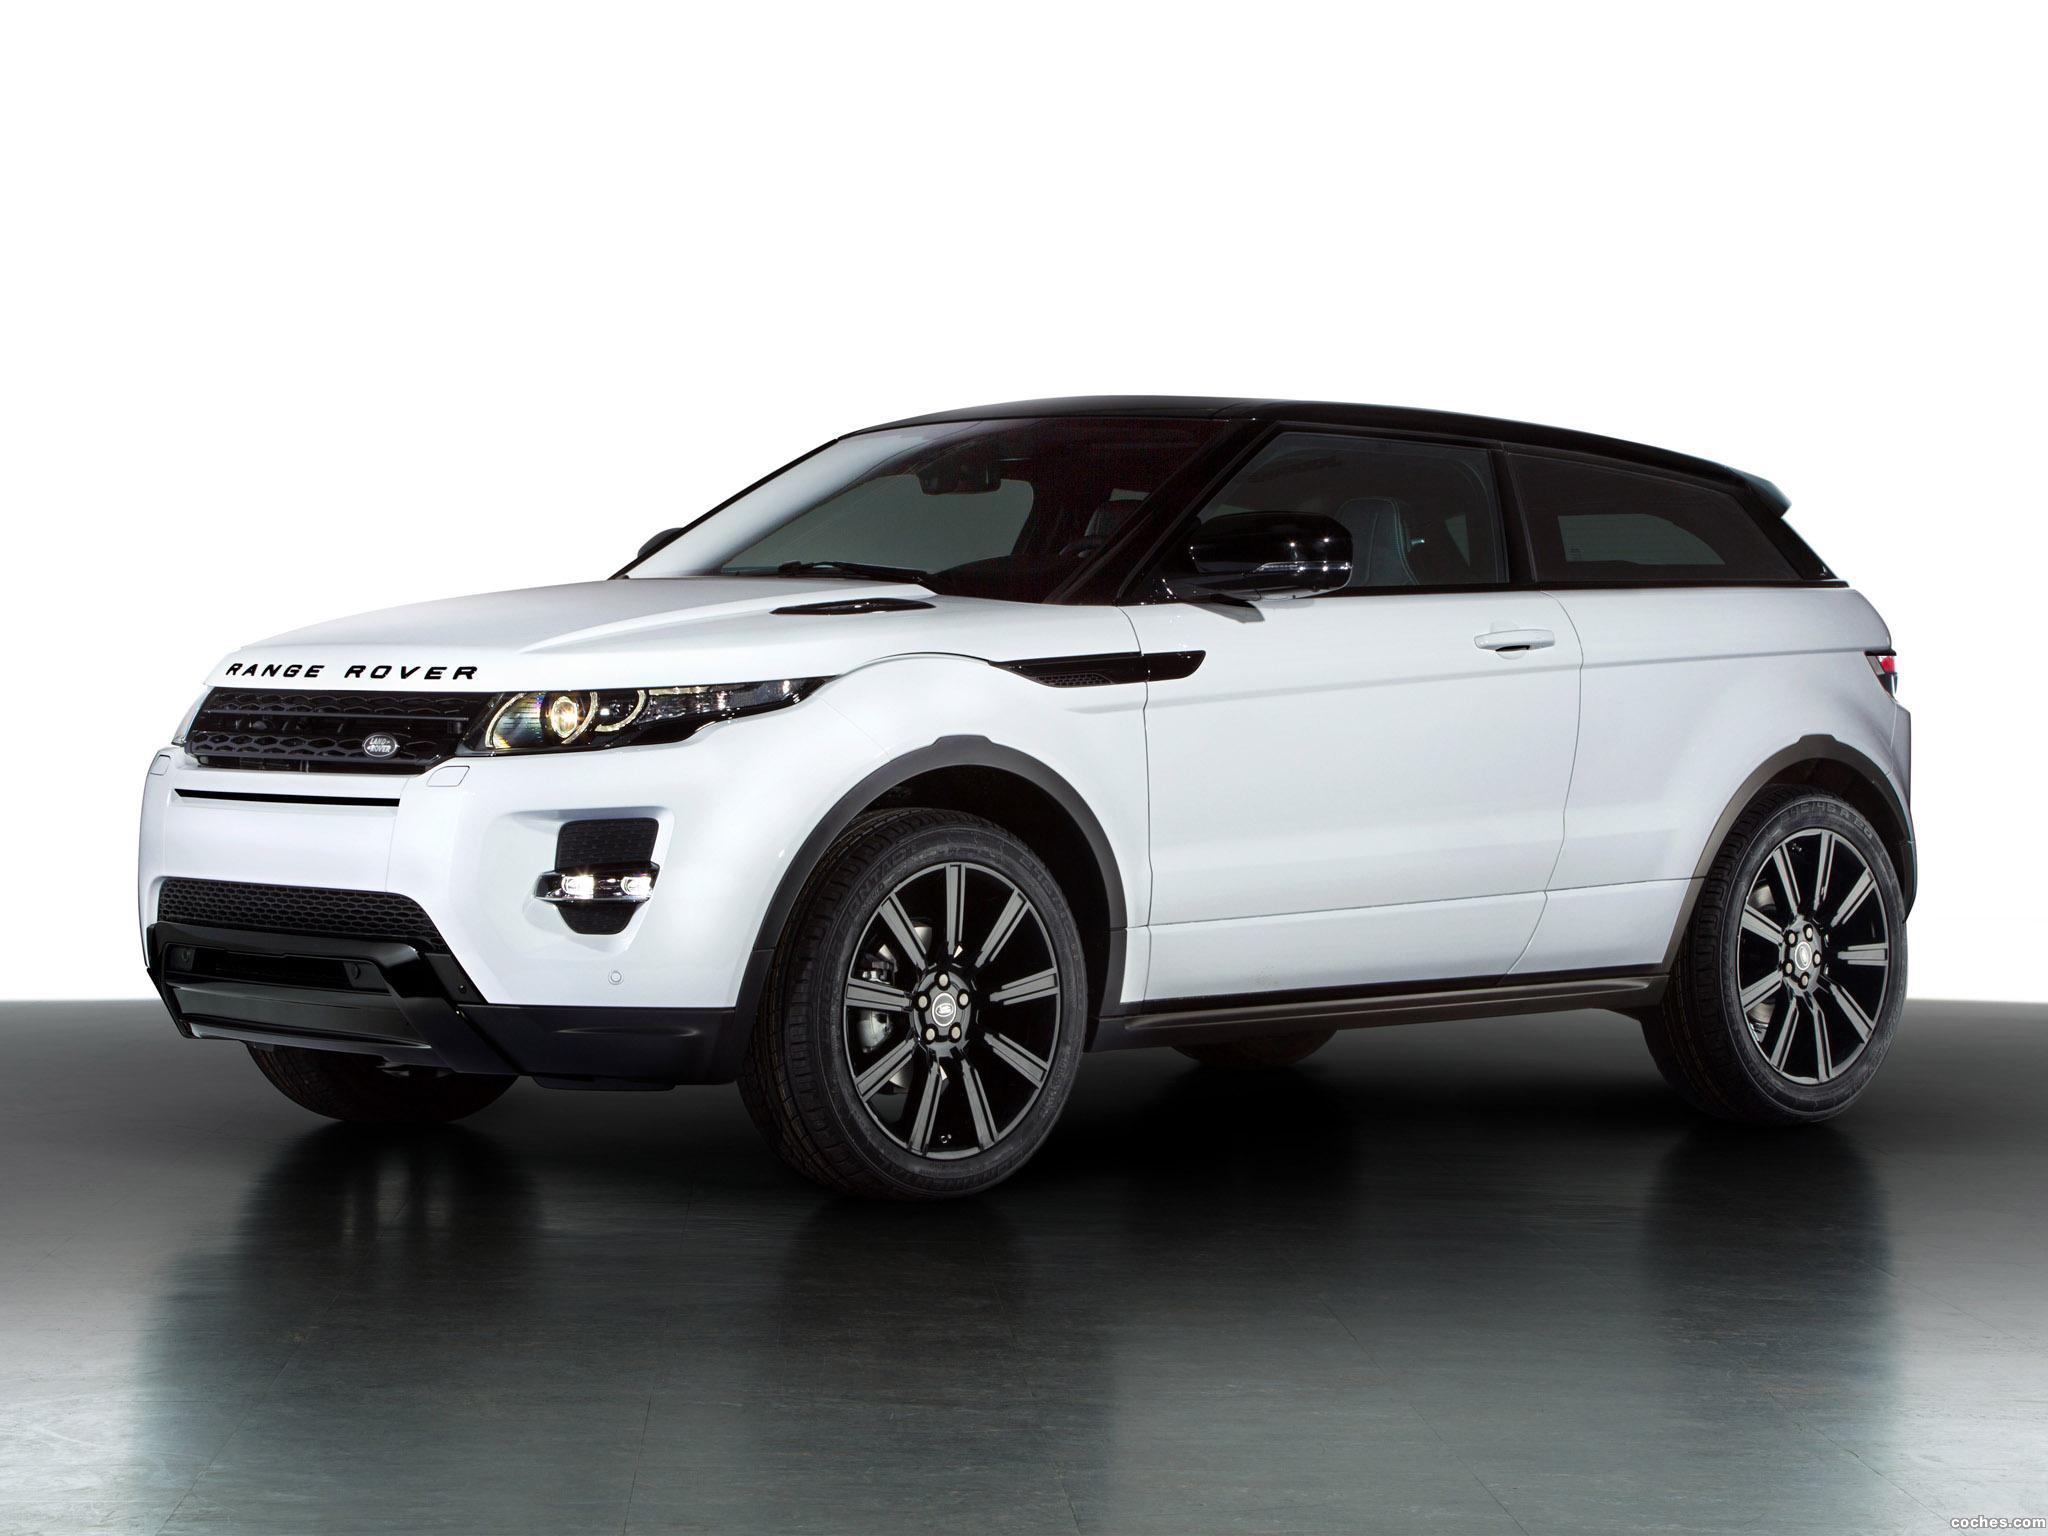 Foto 0 de Land Rover Range Rover Evoque Coupe Black Design 2013